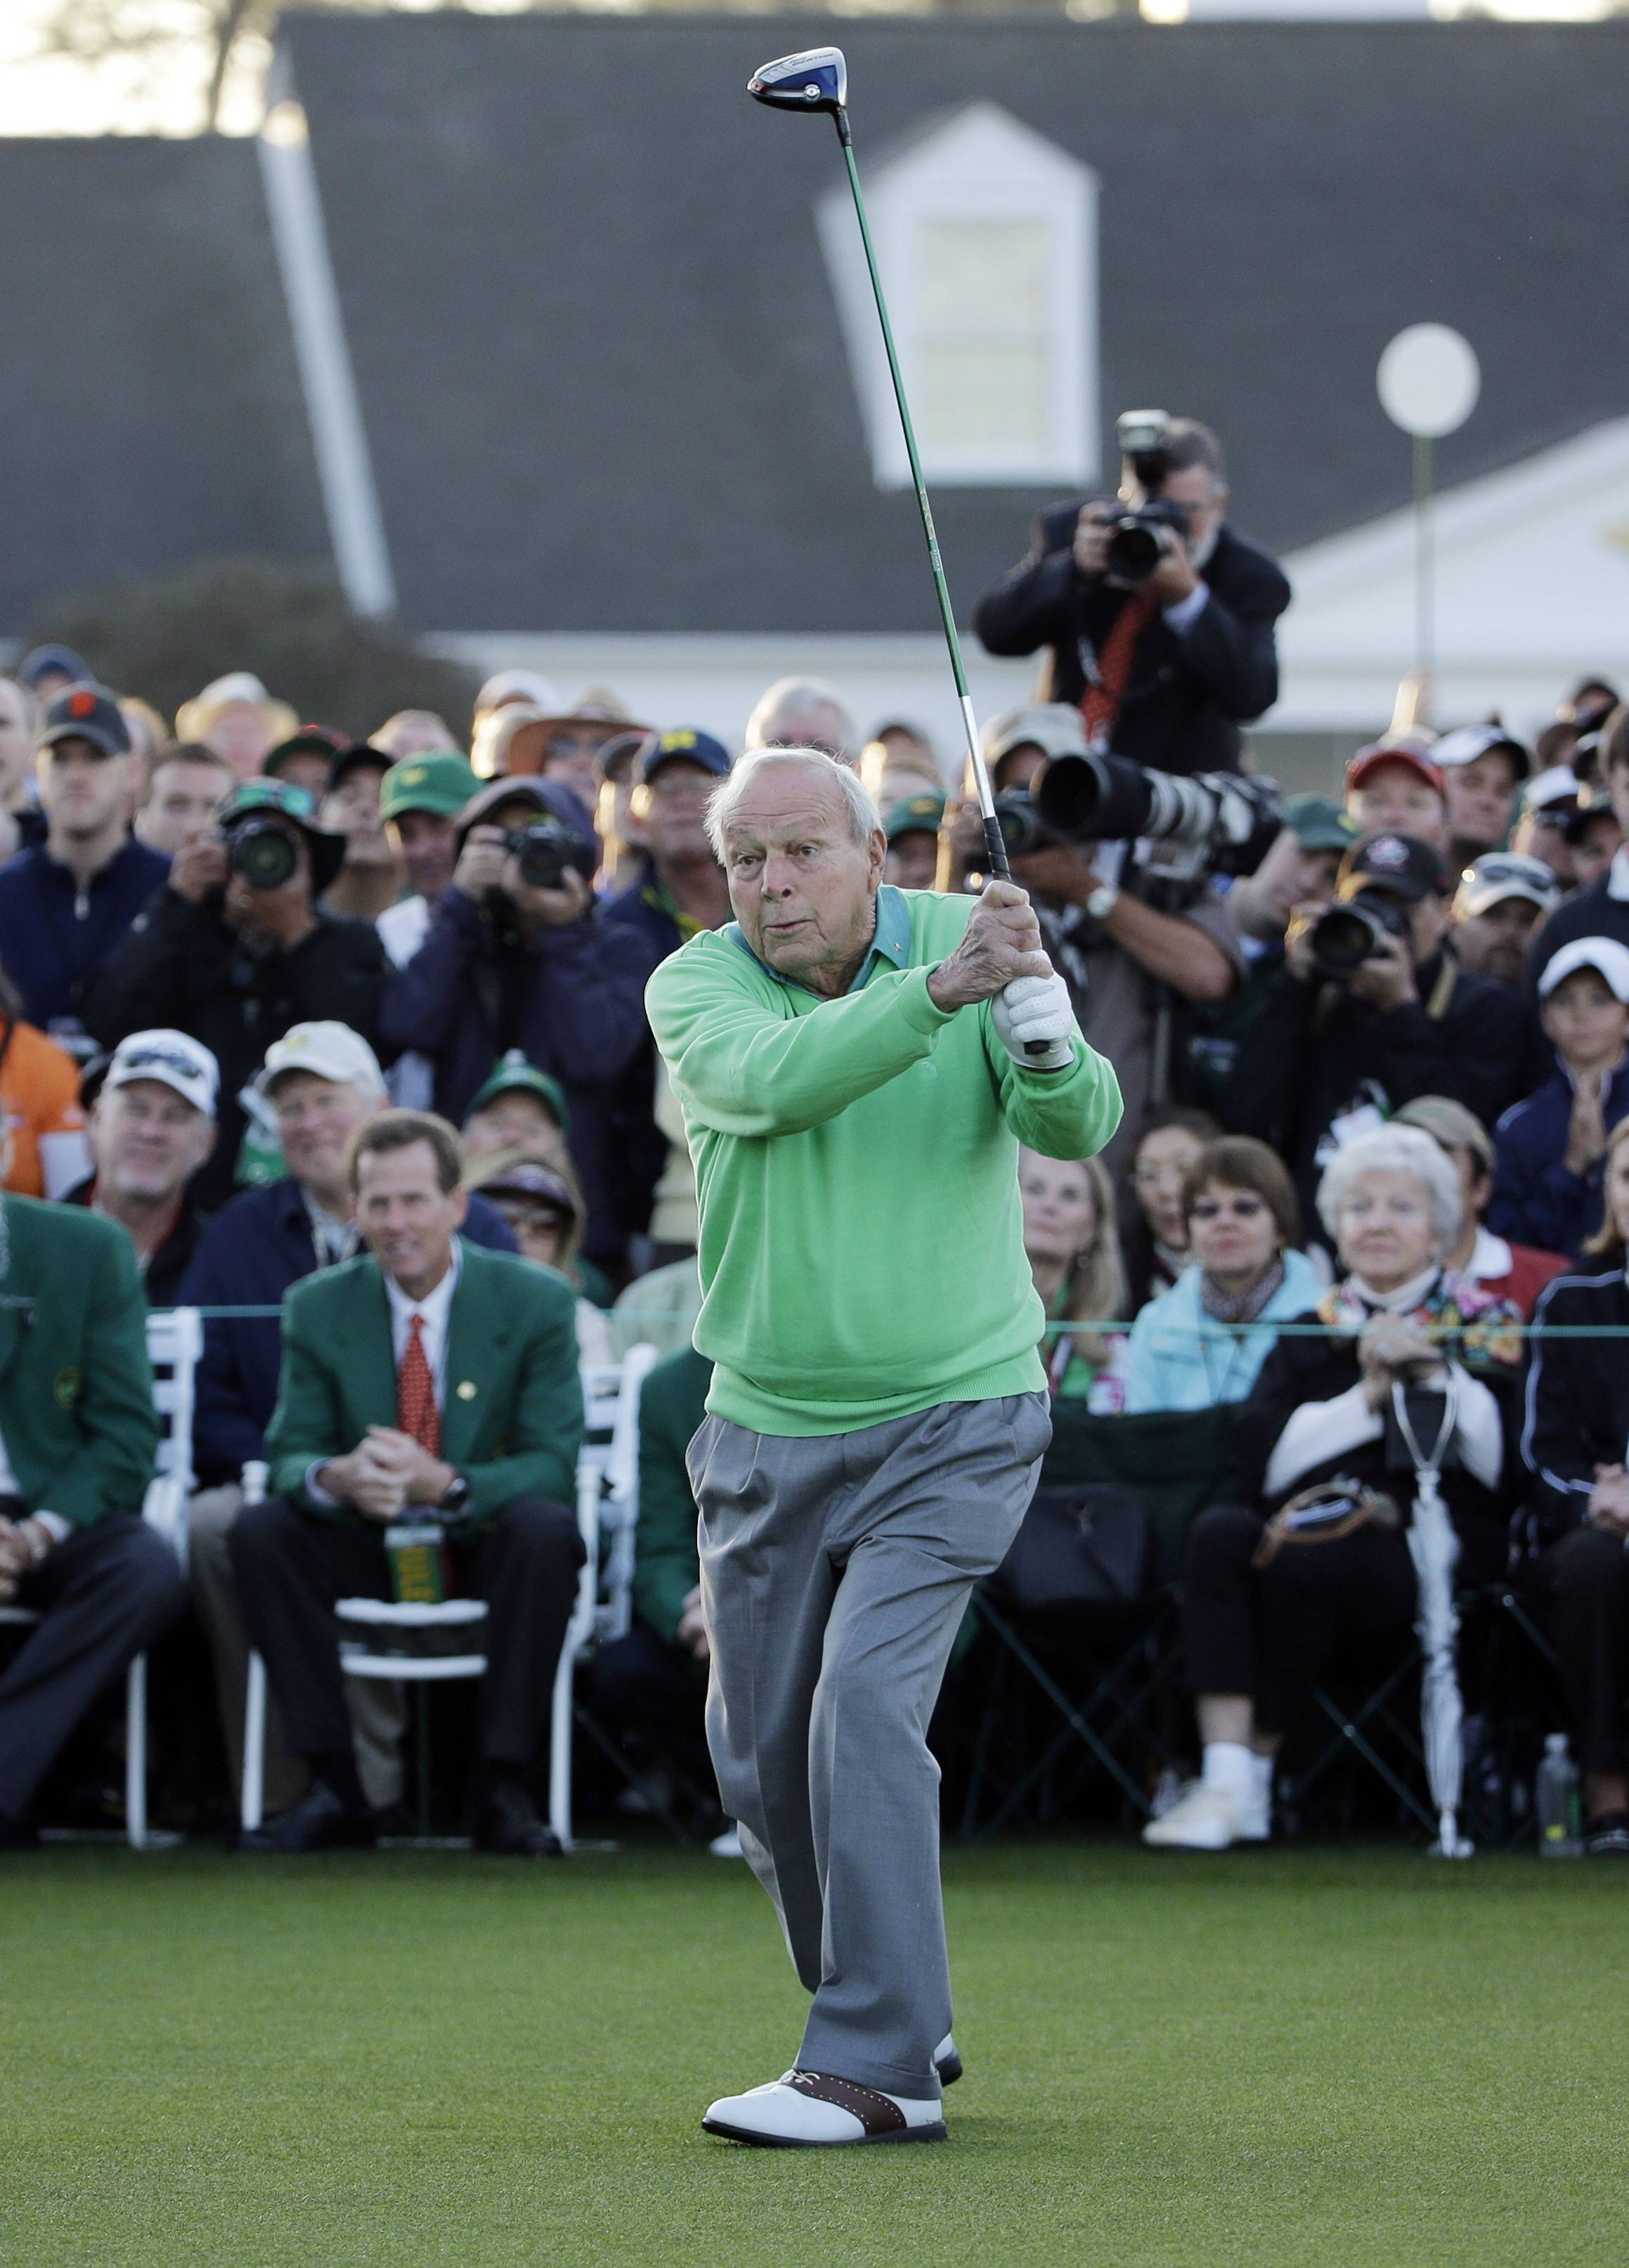 Now 84 years old, Arnold Palmer still commands attention whenever he steps on a golf course, as he did at last week's Masters Tournament at Augusta National.